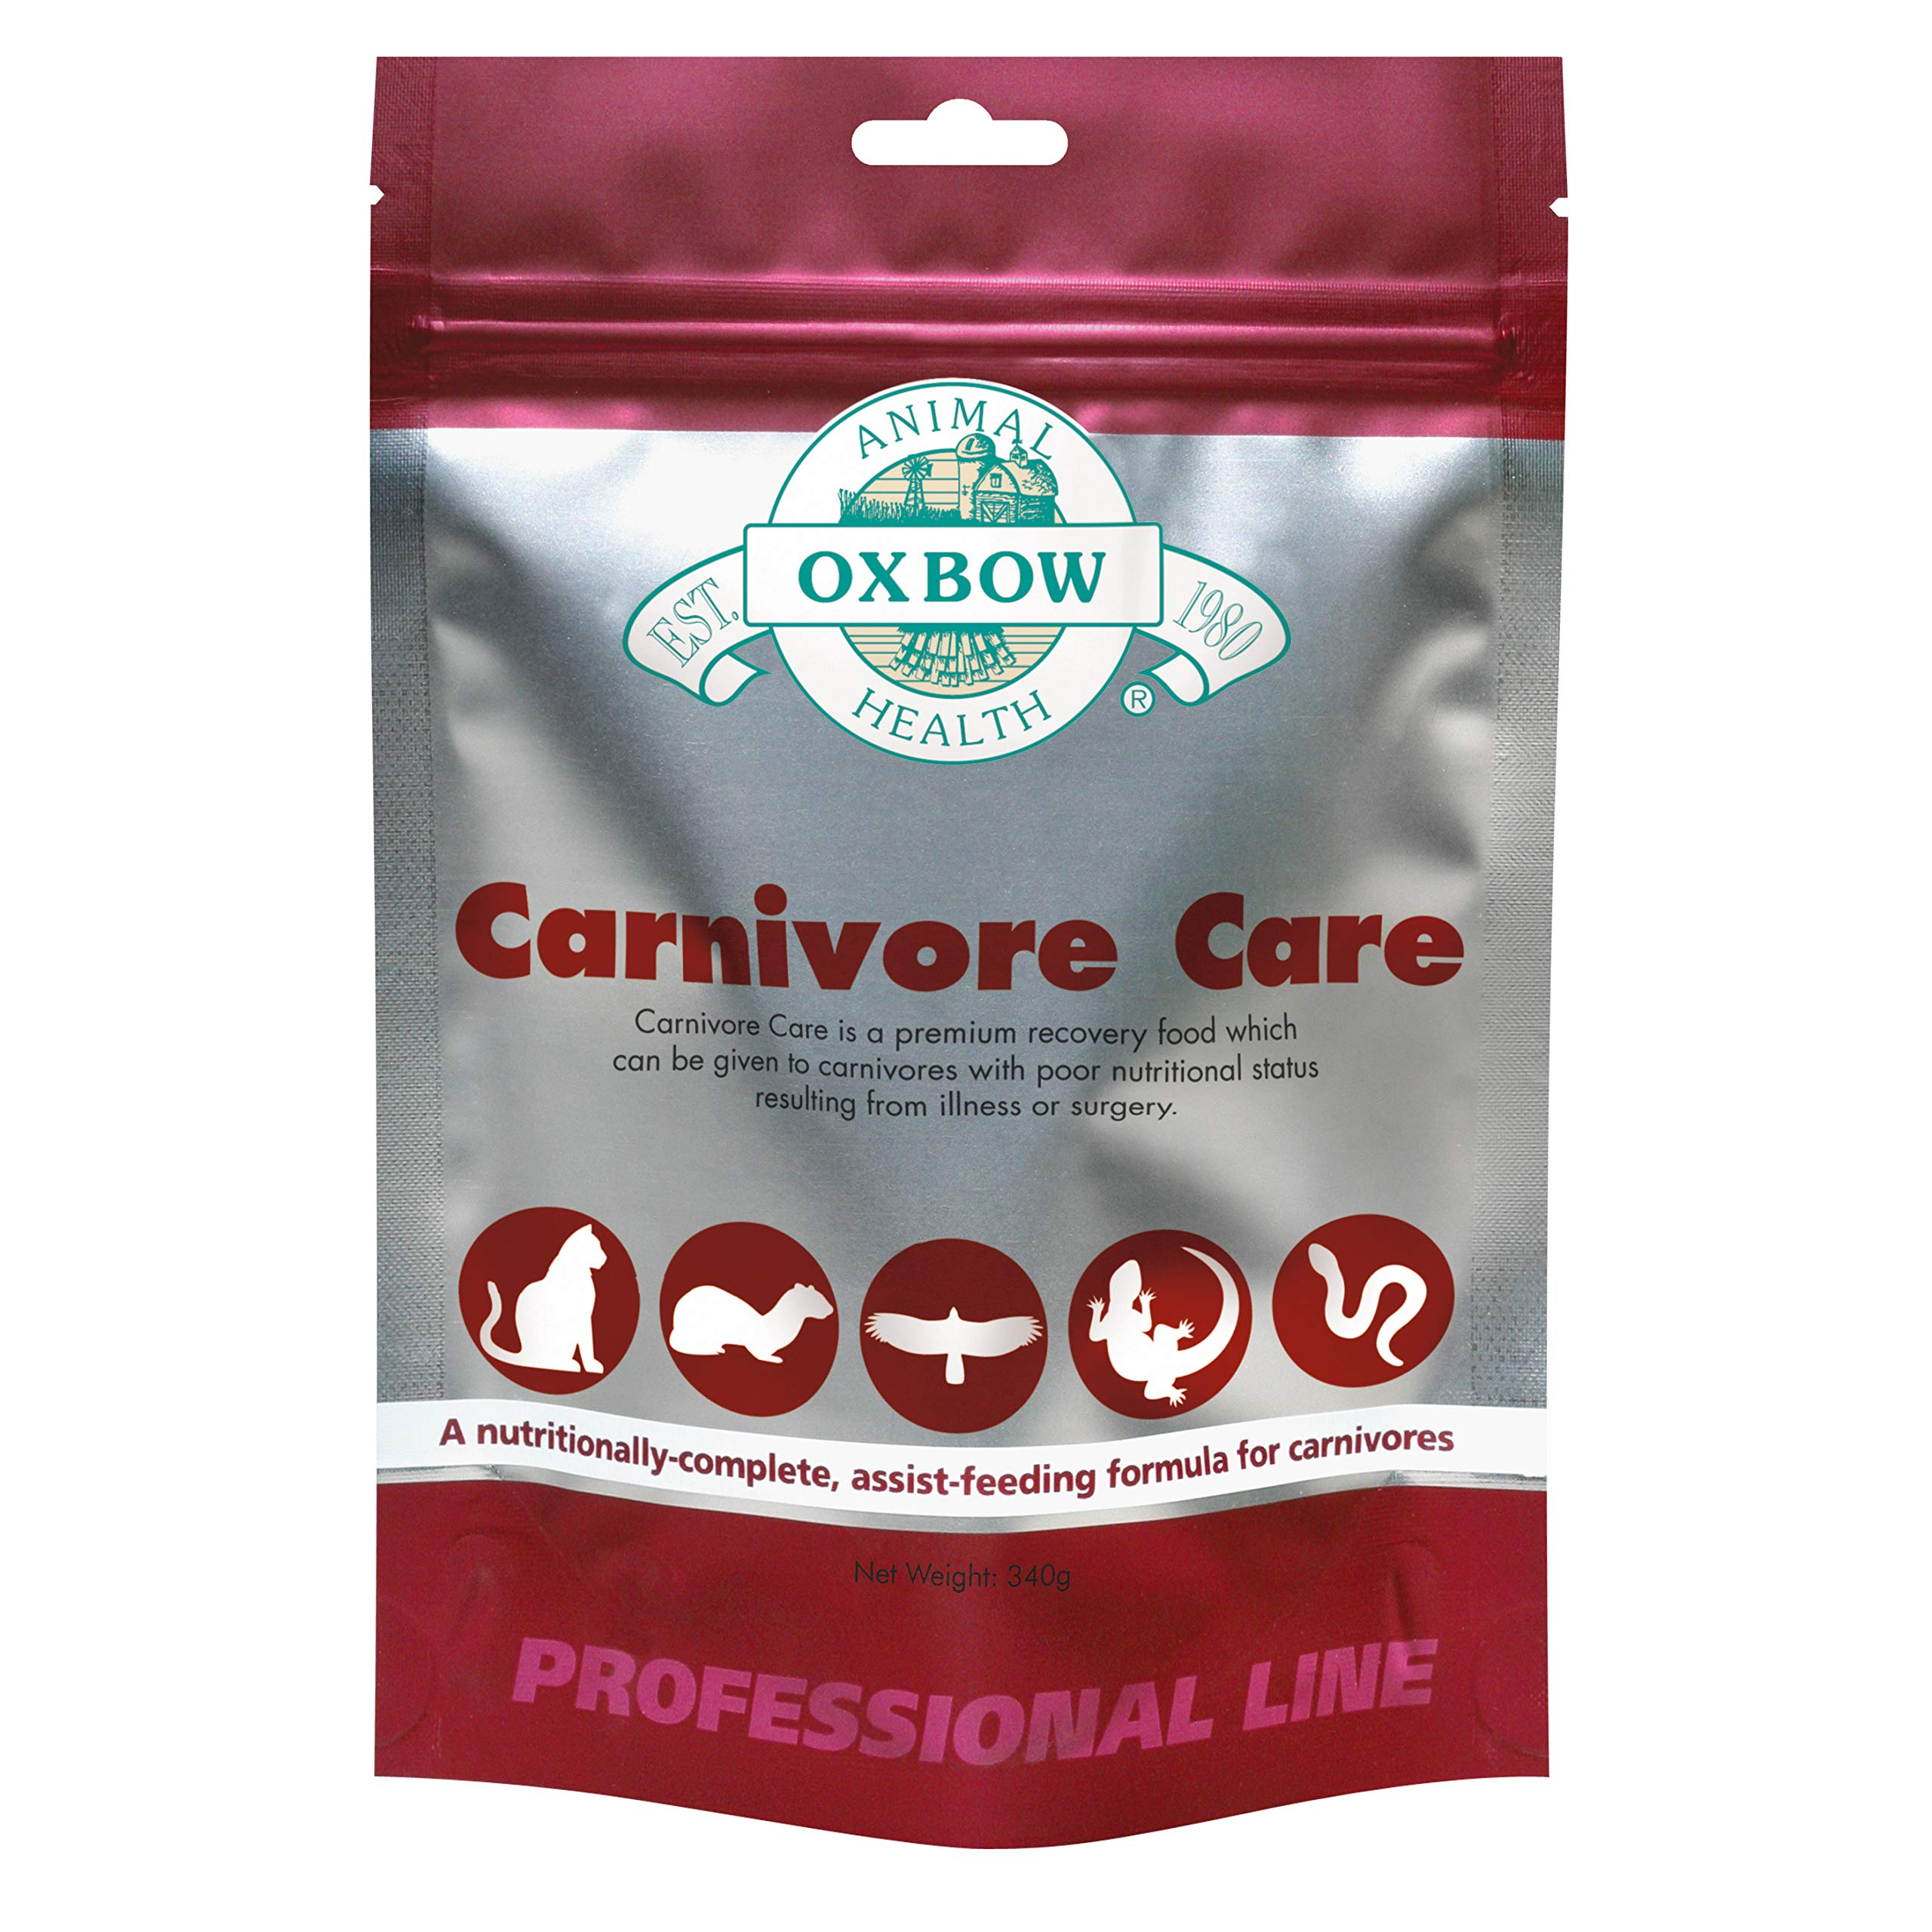 Oxbow Carnivore Care (340 Gram) by Oxbow